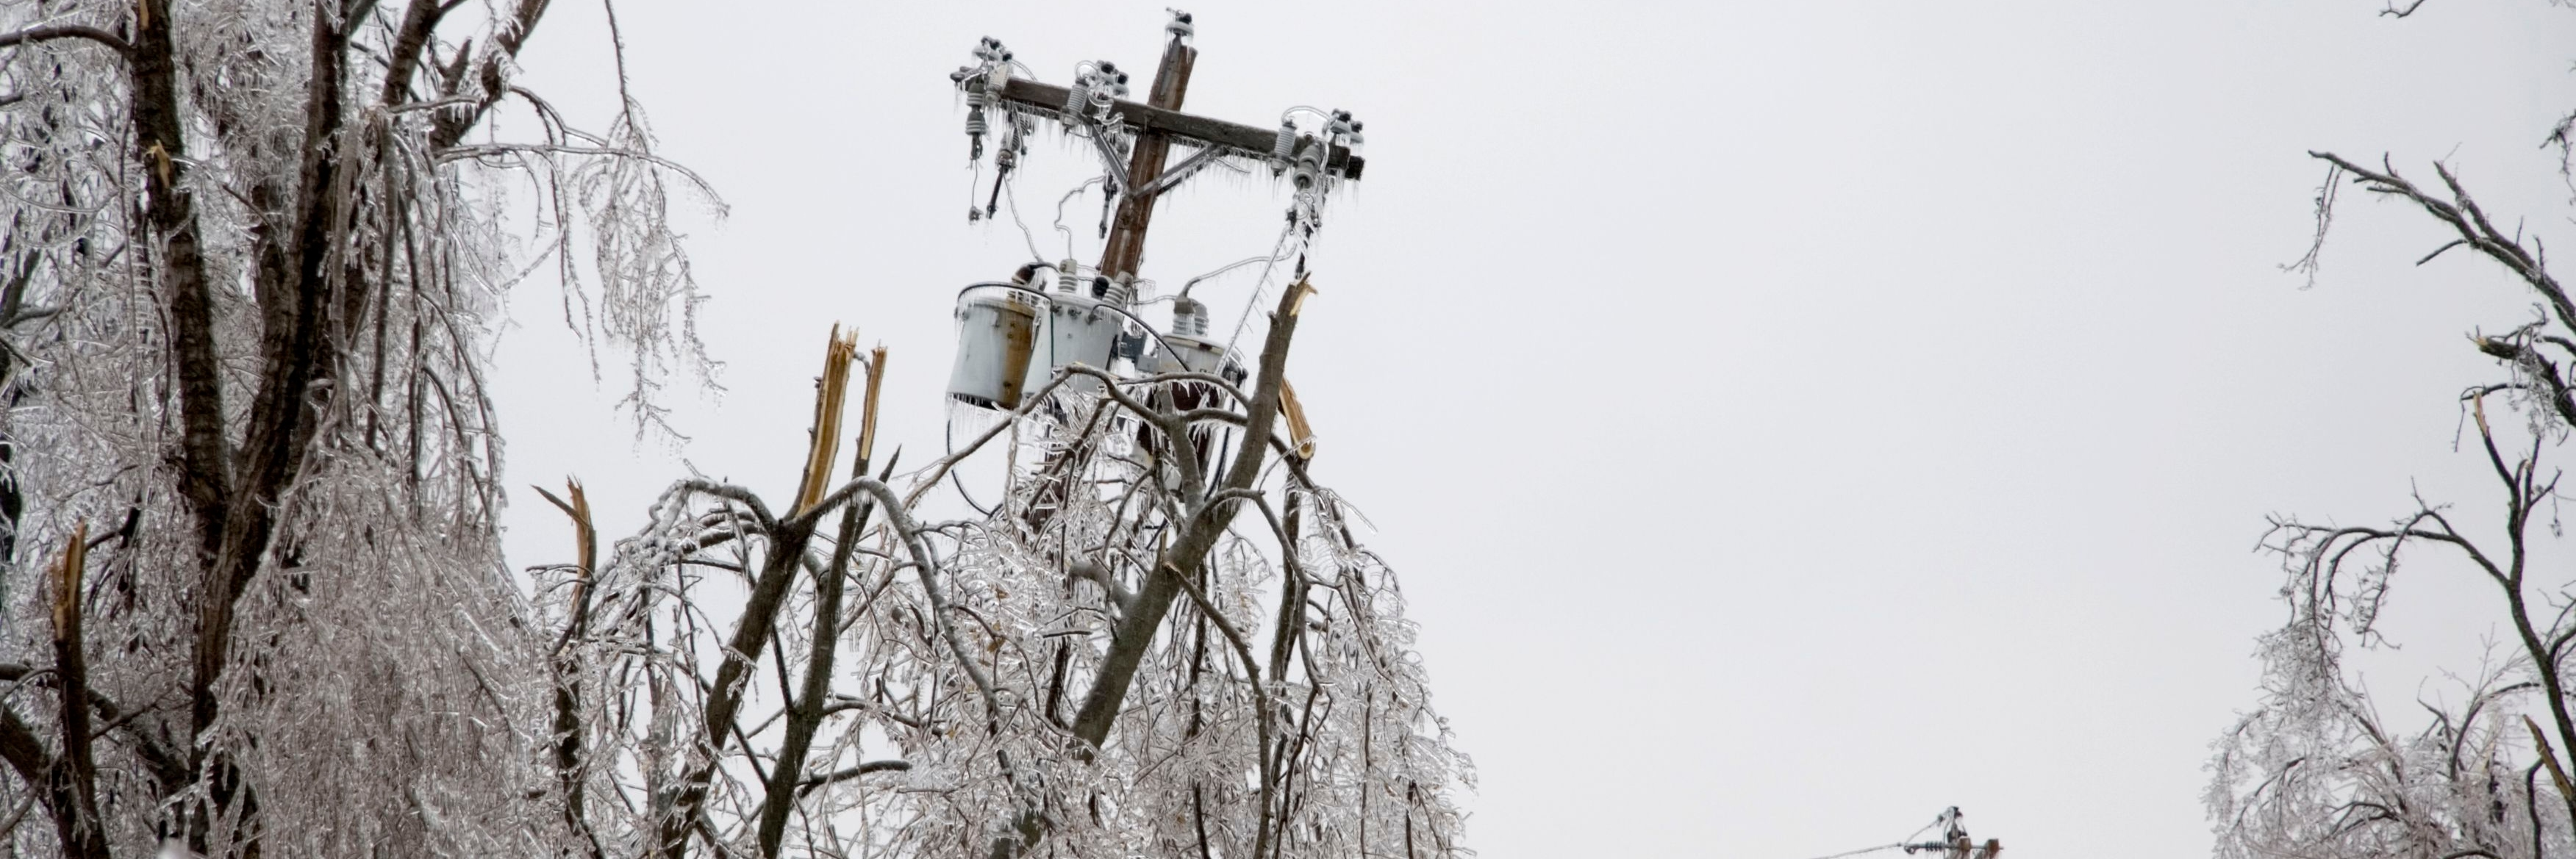 Power pole falling after blizzard